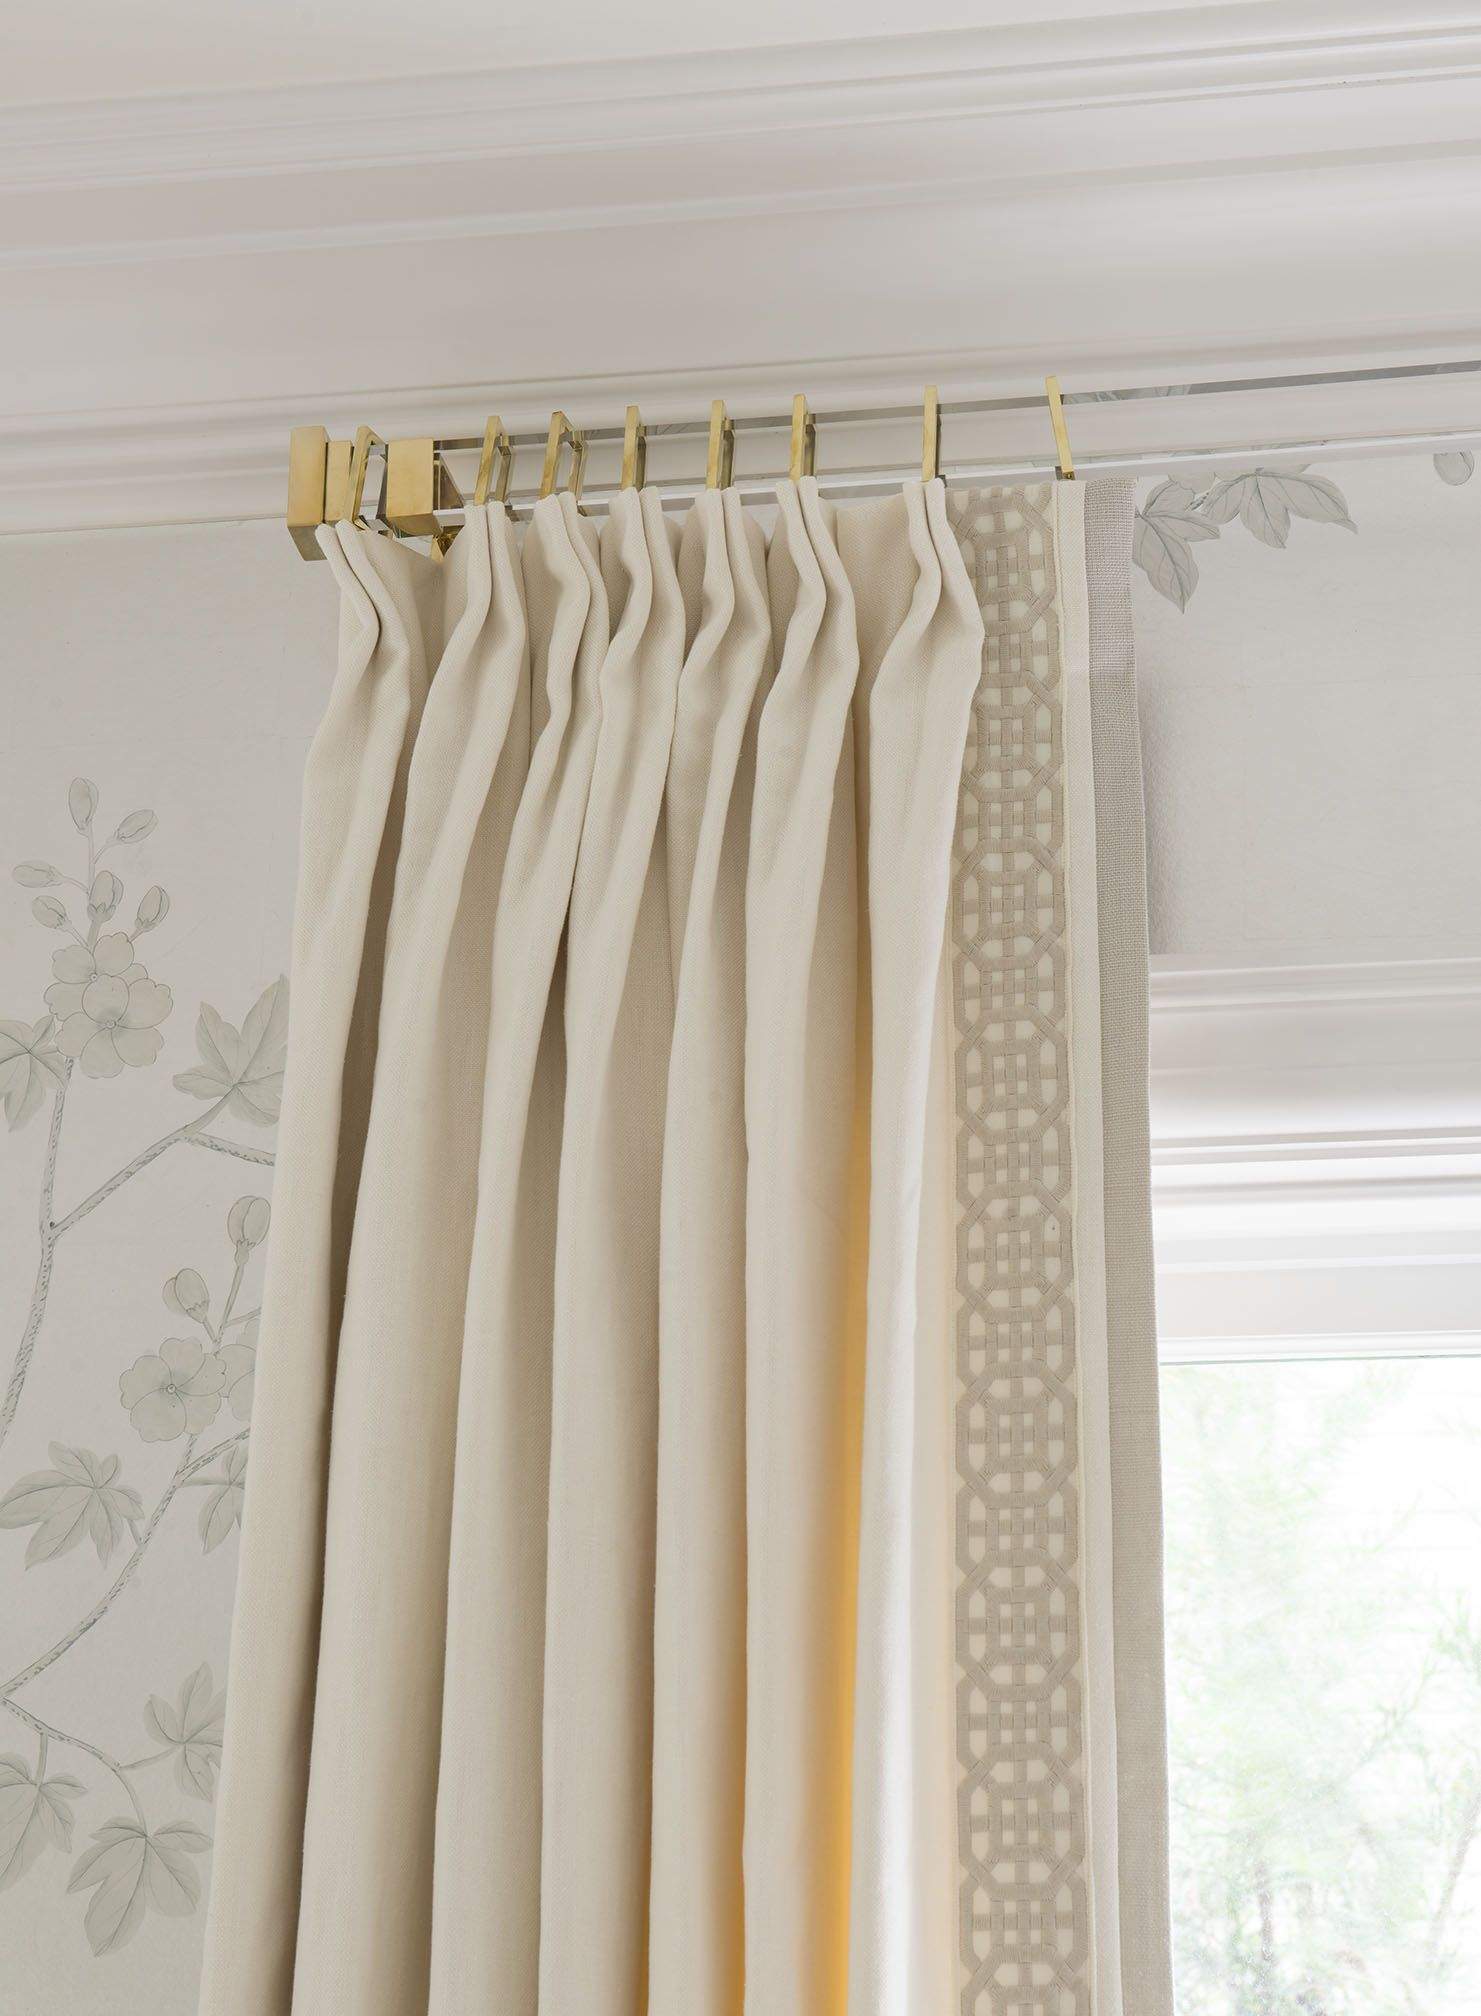 Drapery And Curtain Ideas: Pin By Gretchen Everett Hardware & Home On Gretchen